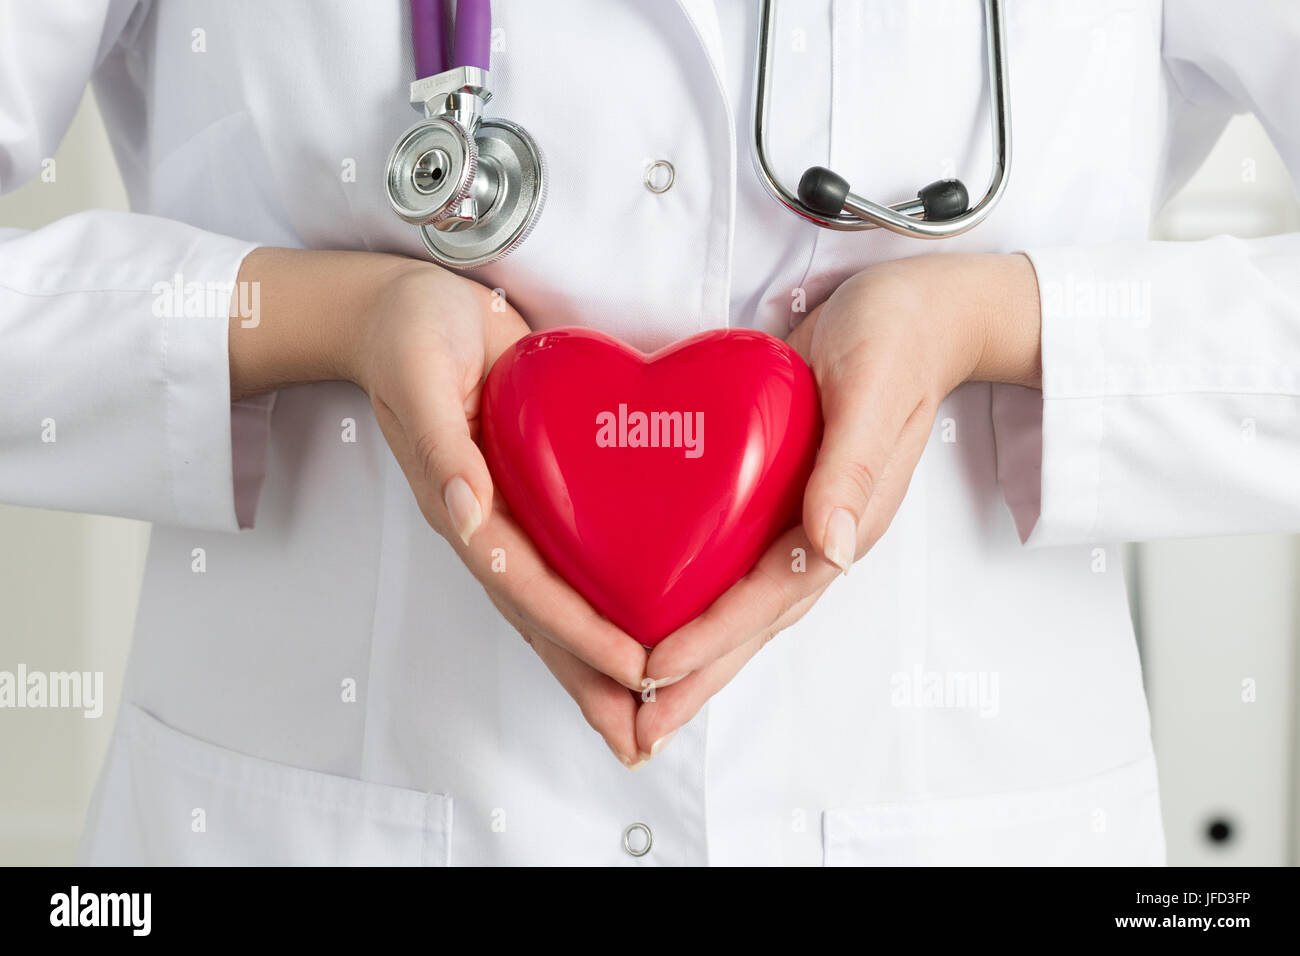 Female doctor's hands holding red heart. Doctor's hands closeup. Medical help, prophylaxis or insurance - Stock Image